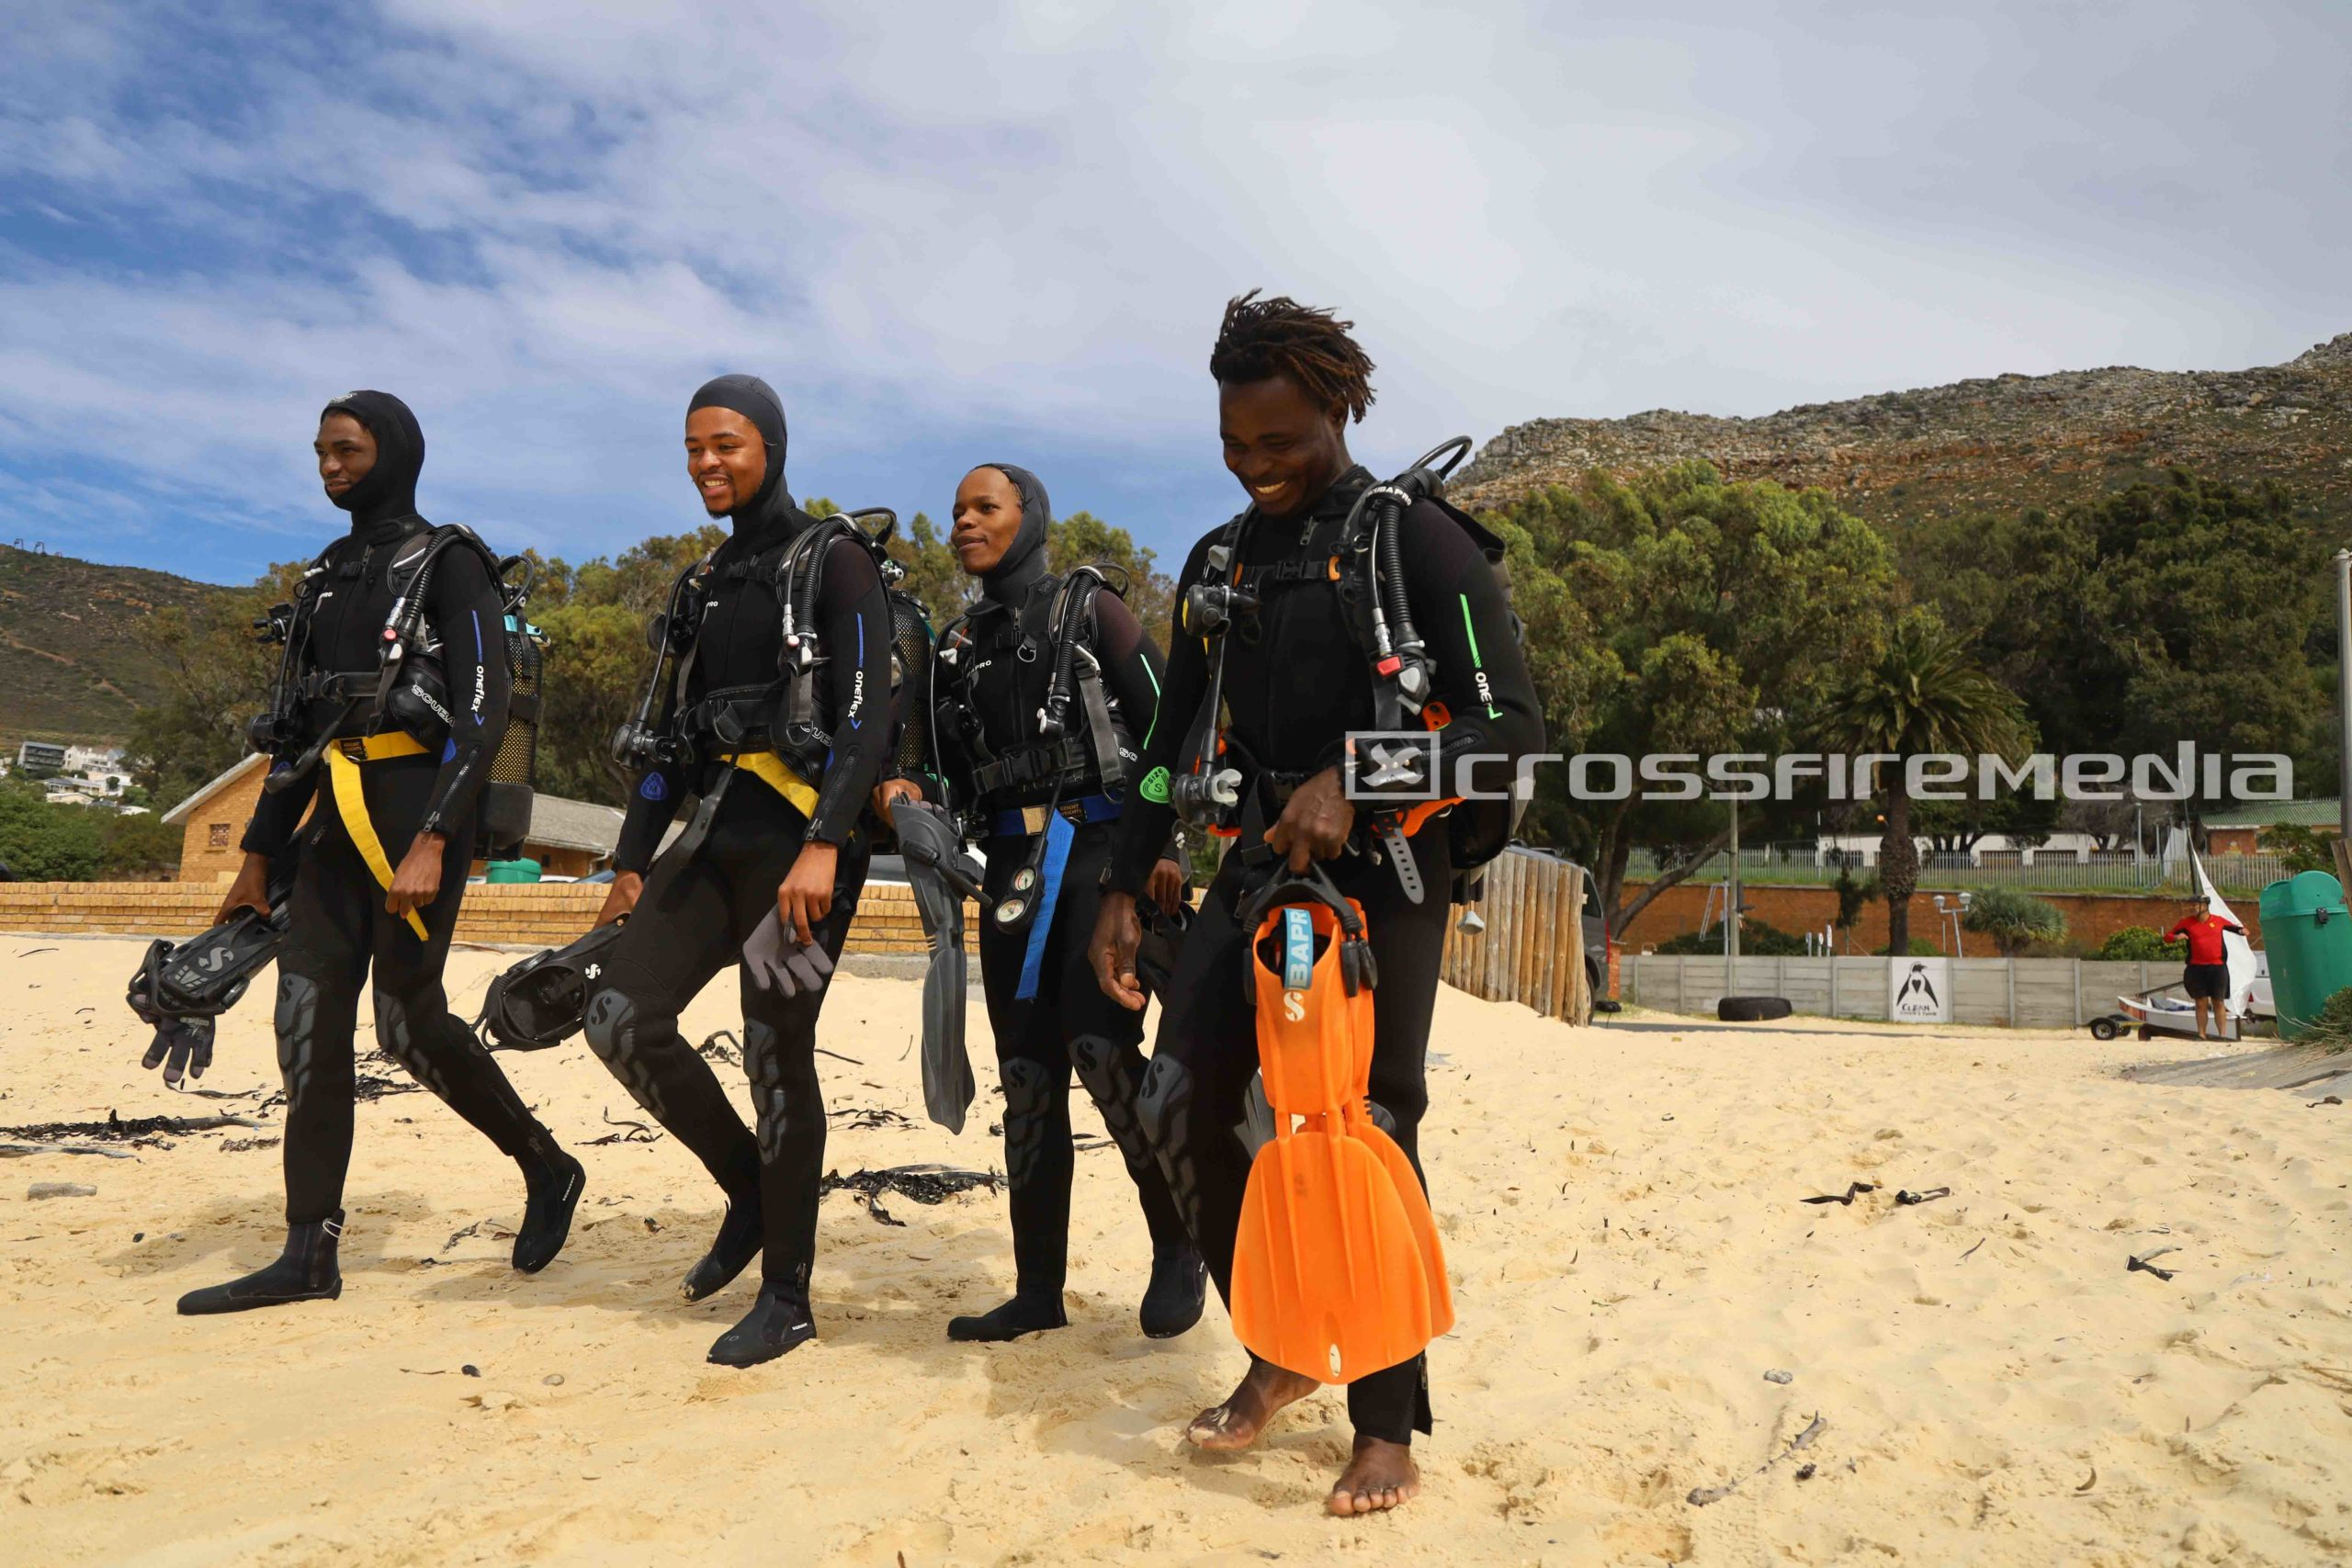 product image of scuba divers on beach in scuba gear